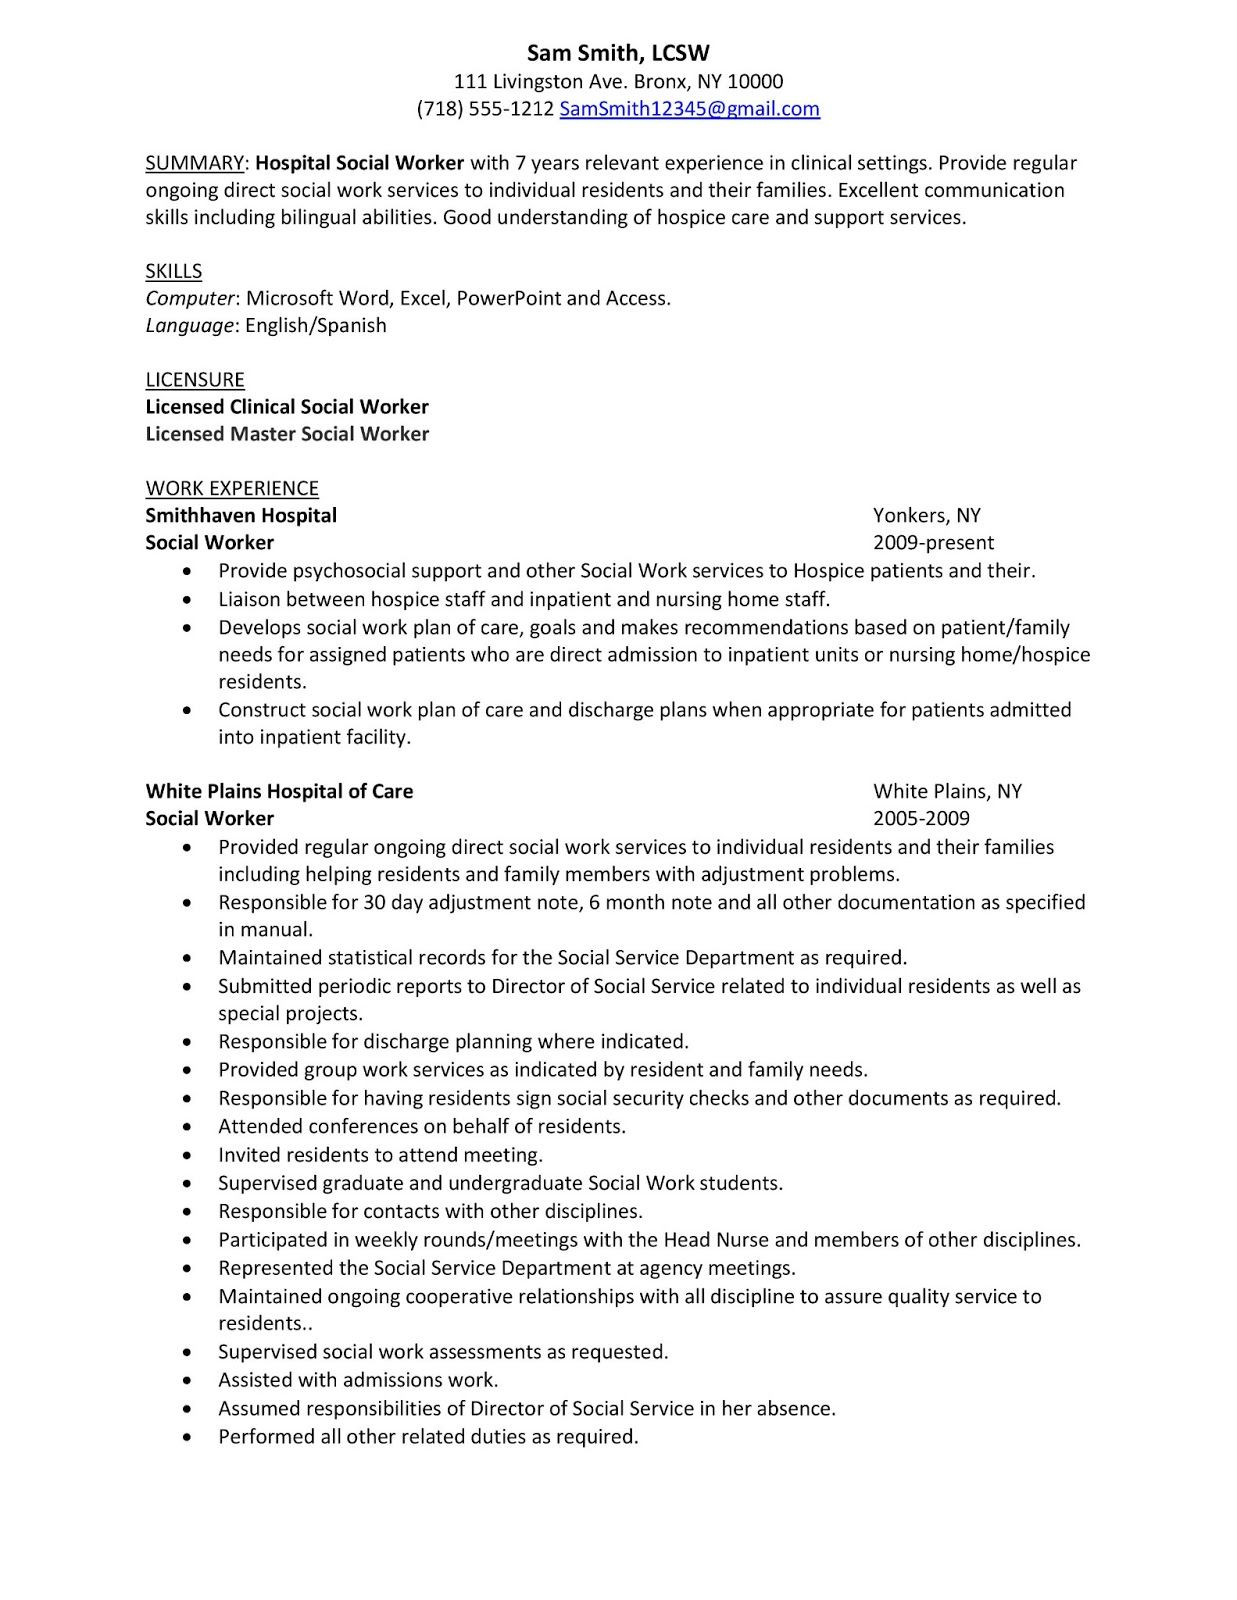 Social Work Resume Sample Sample Social Work Resume Examples  Resume Templates  Pinterest